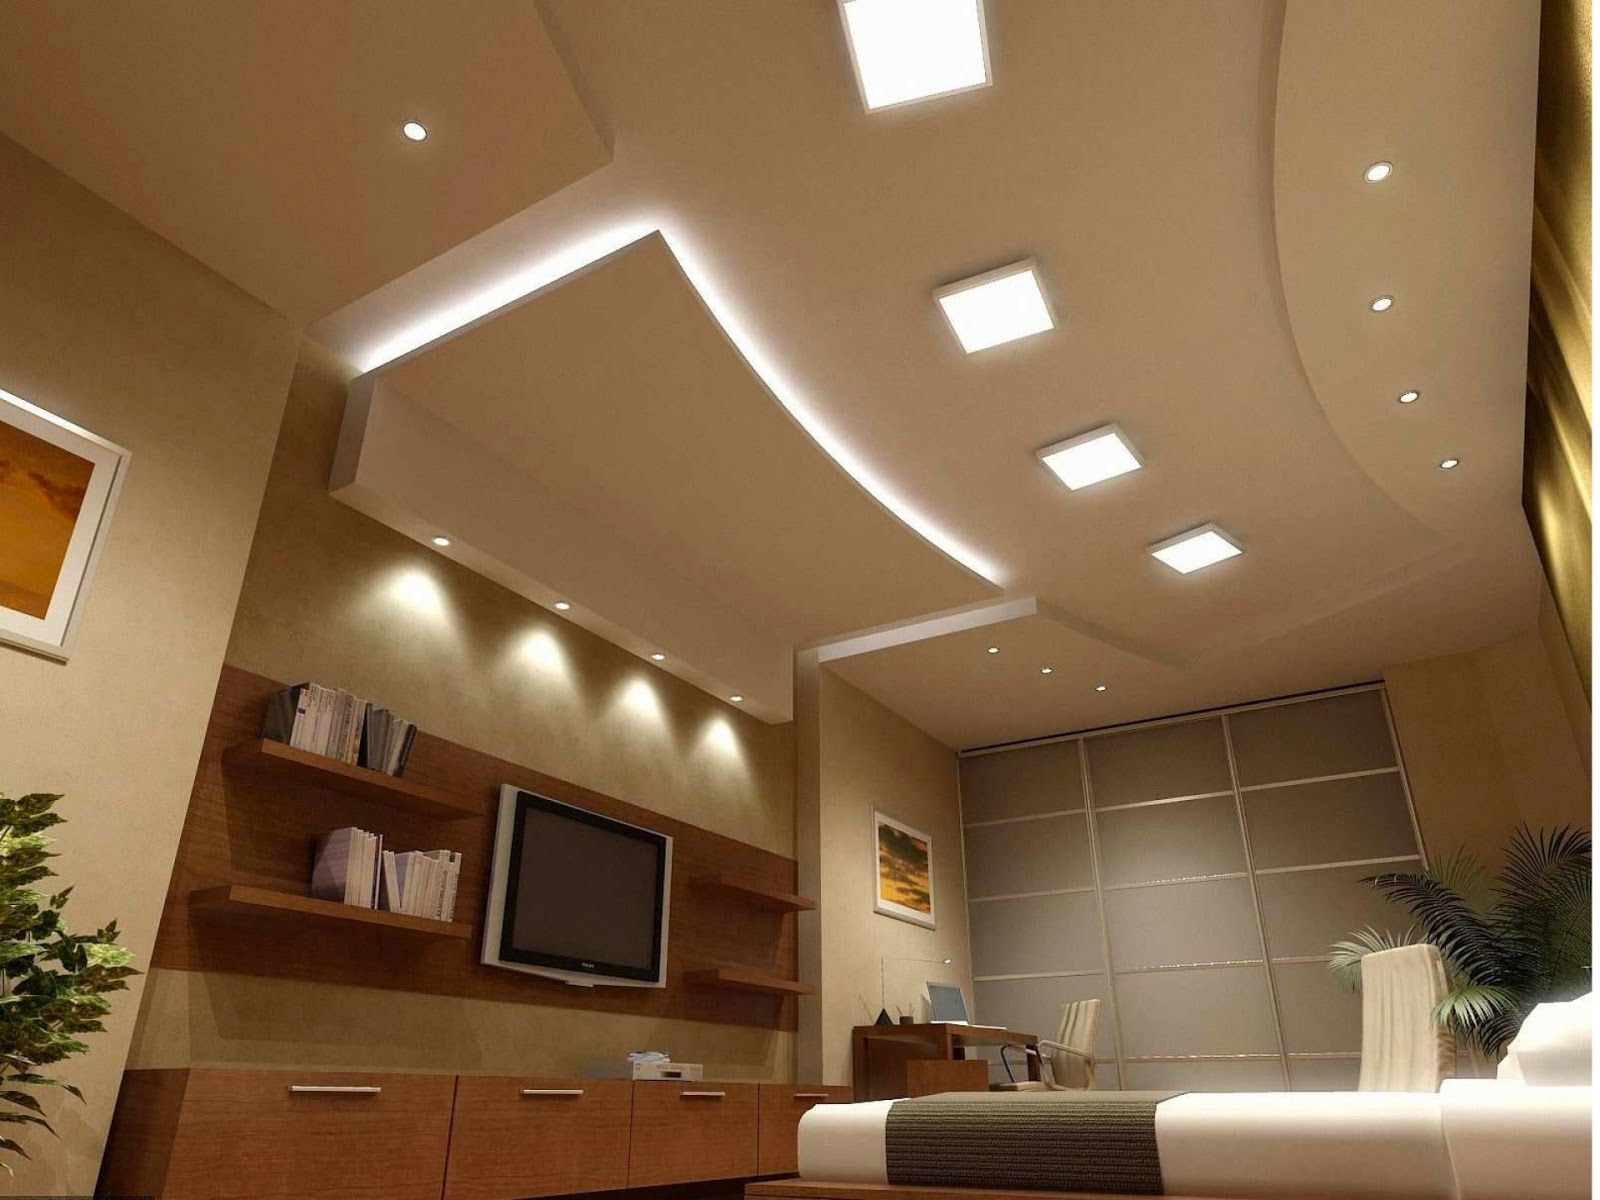 Recessed lighting layout mybktouch for recessed lighting how to recessed lighting layout mybktouch for recessed lighting how to set up a recessed lighting mozeypictures Images